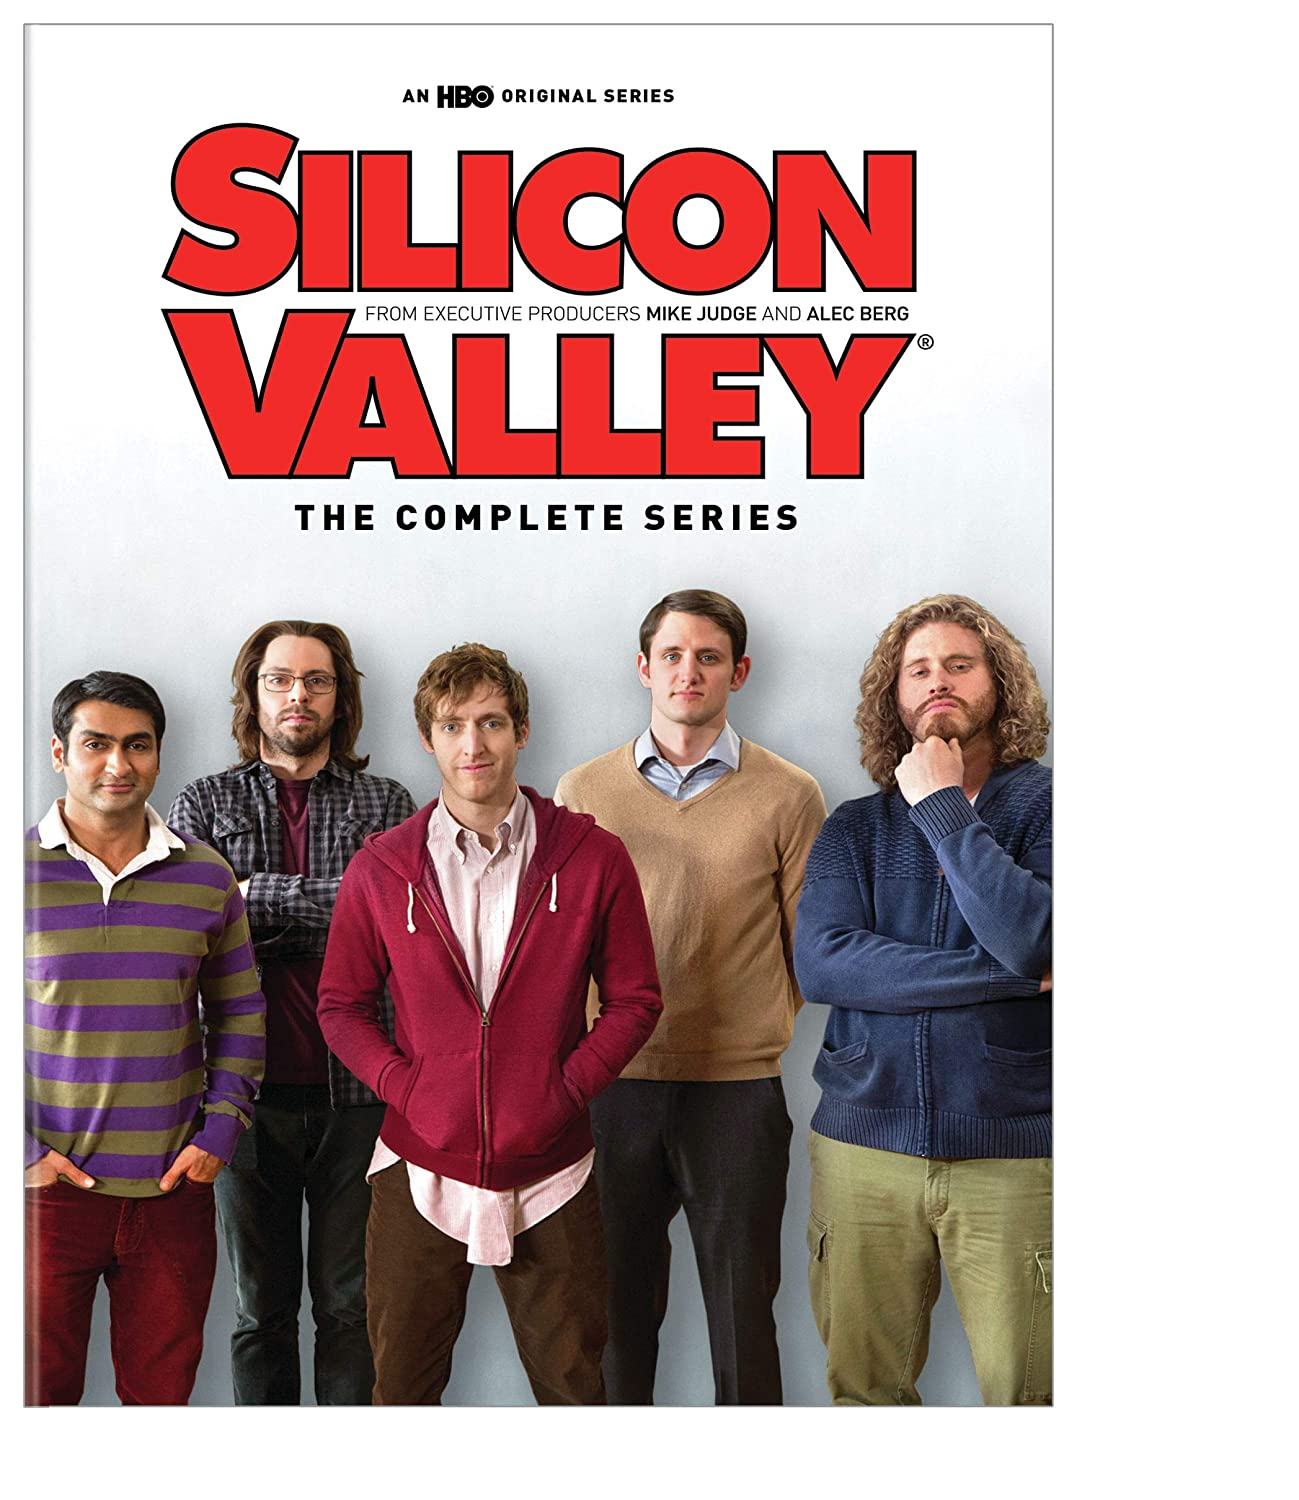 Silicon Valley DVD Seasons 1-4 Set HBO DVDs & Blu-ray Discs > DVDs